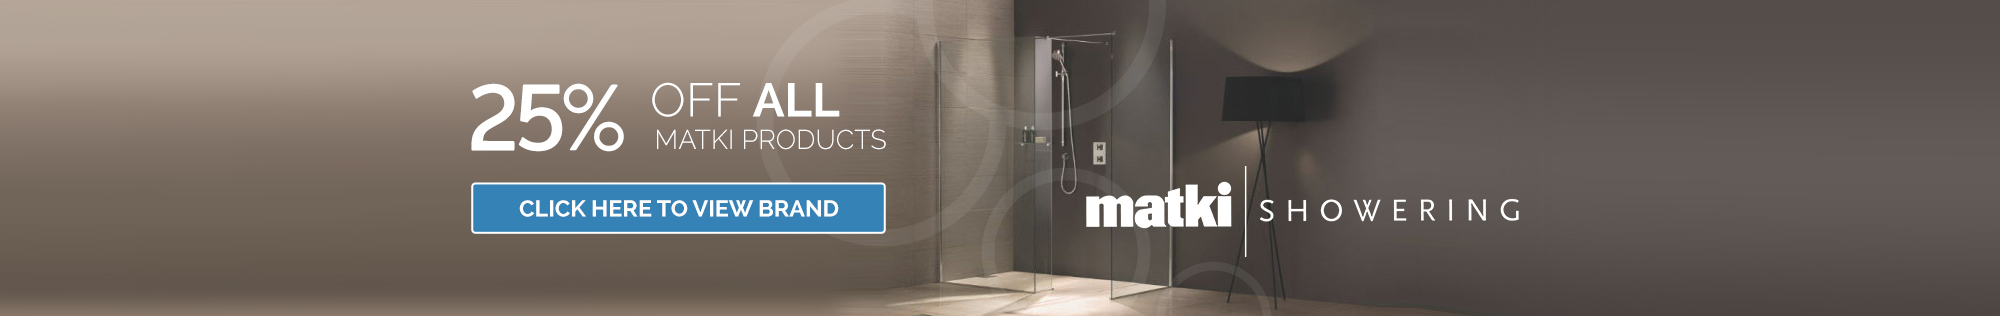 25% off ALL Matki products this Spring! Click here to view brand